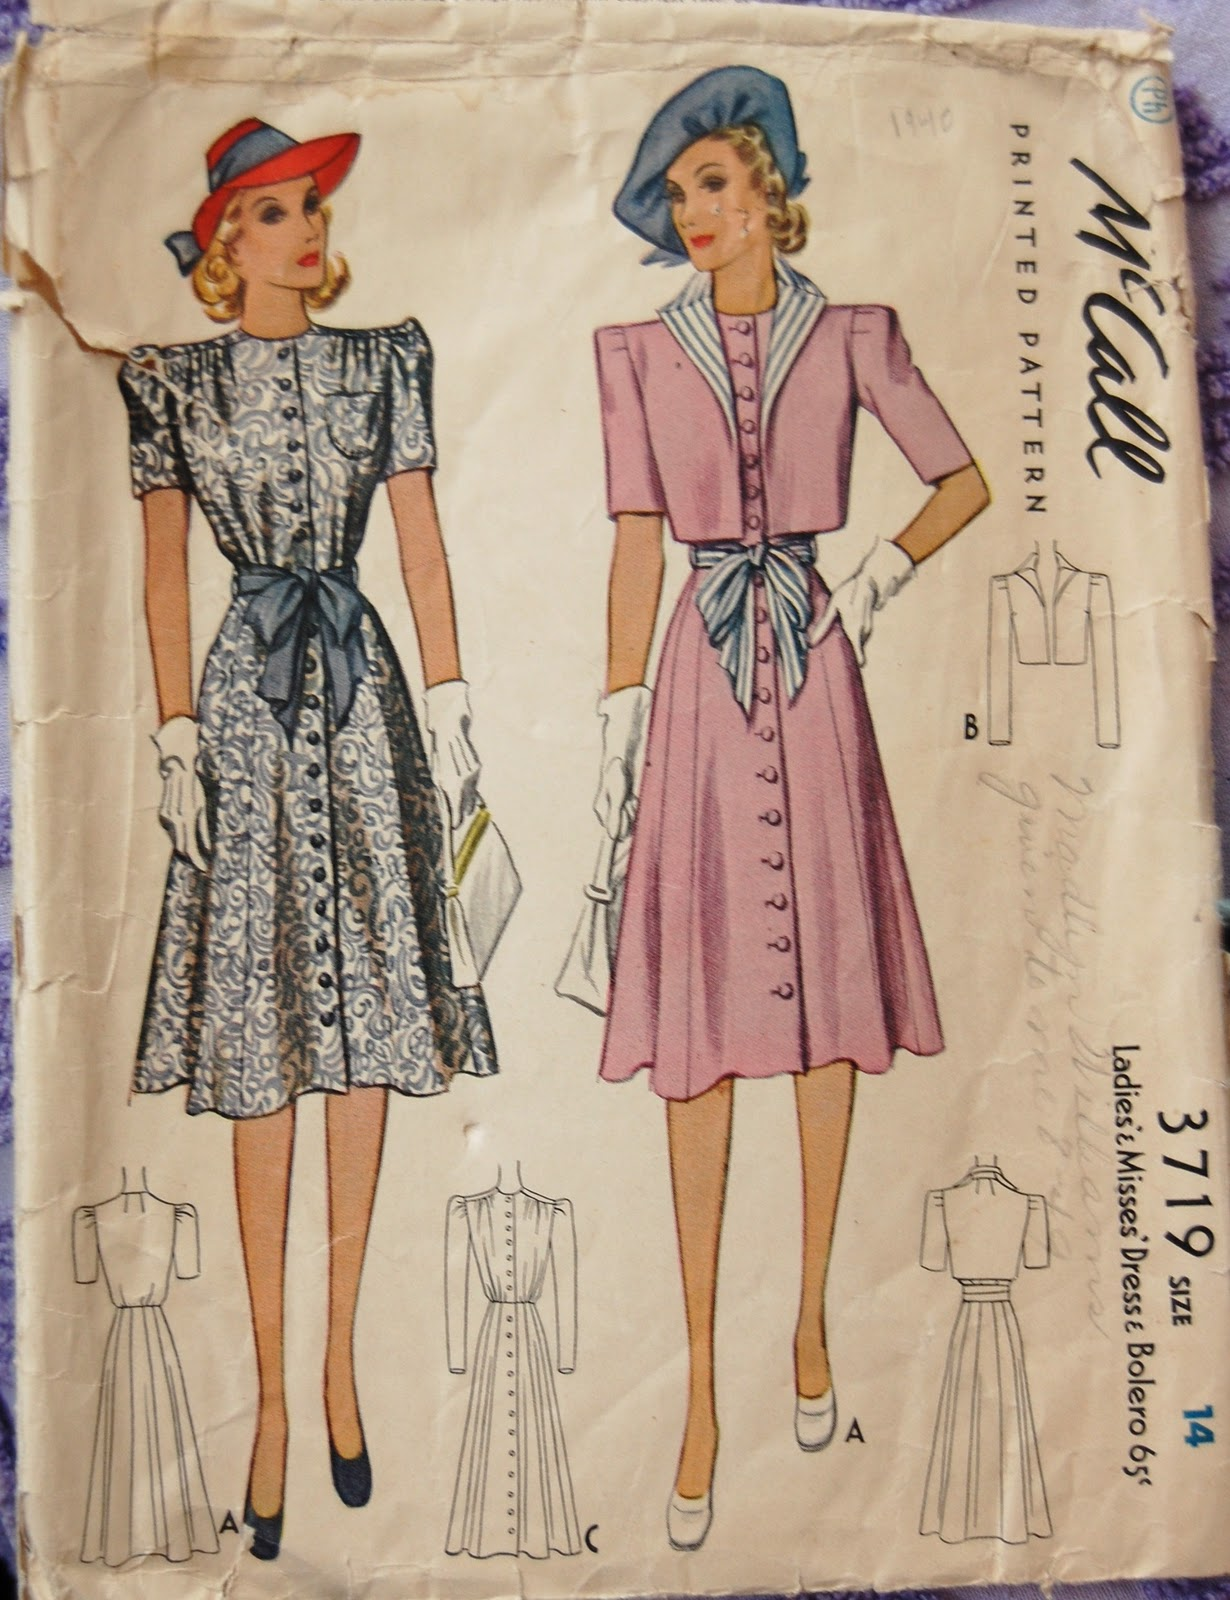 1940s fashion dresses hot girls wallpaper